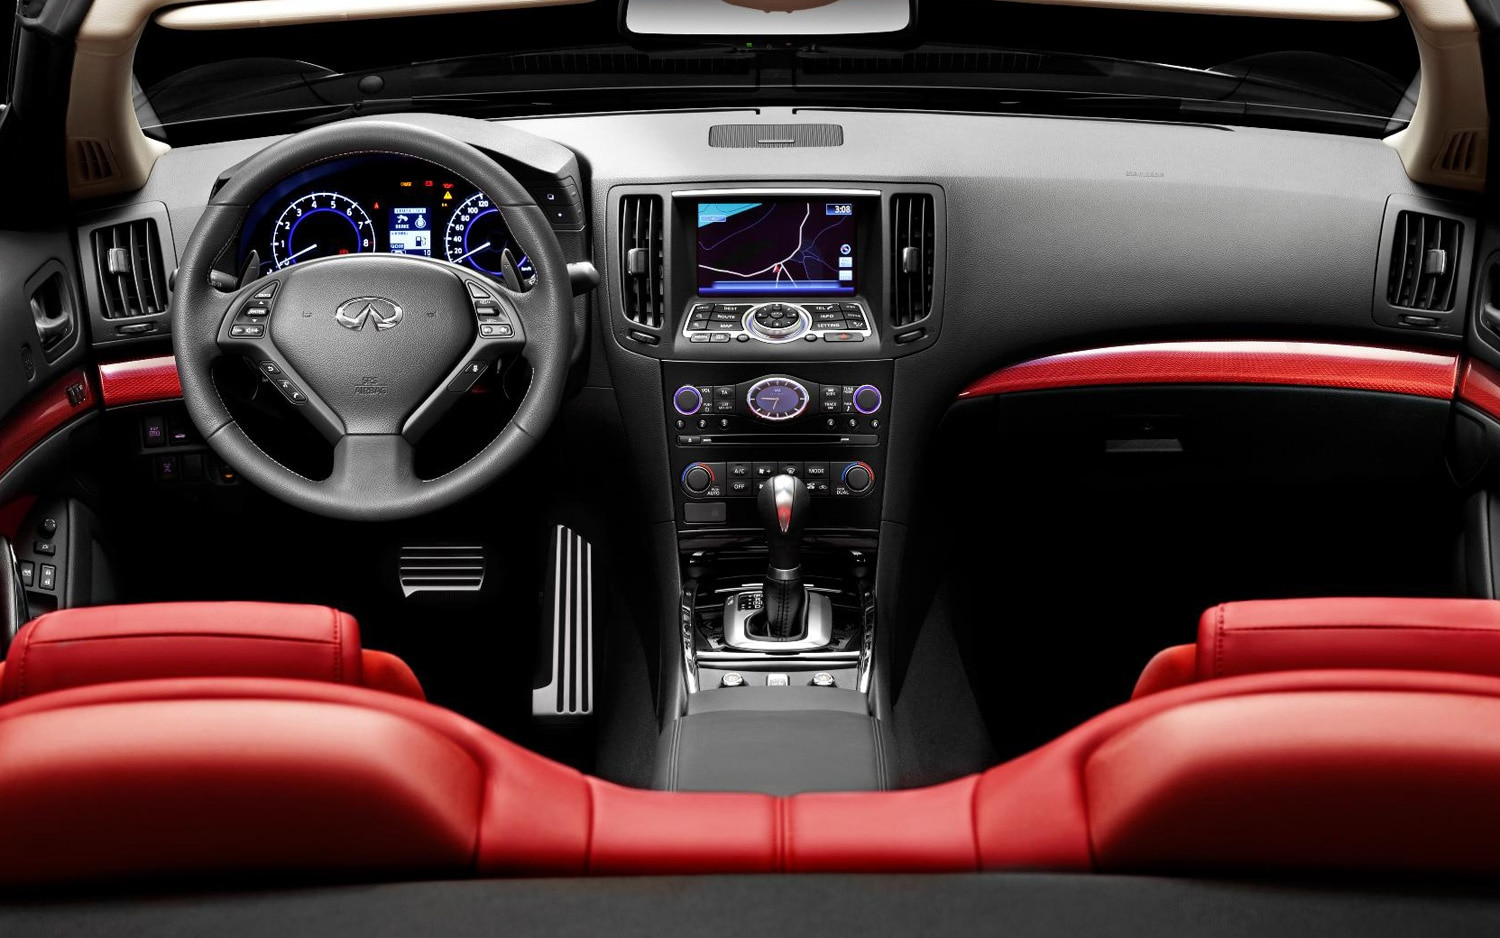 2013 infiniti g37 ipl convertible confirmed for production evan mccausland vanachro Image collections